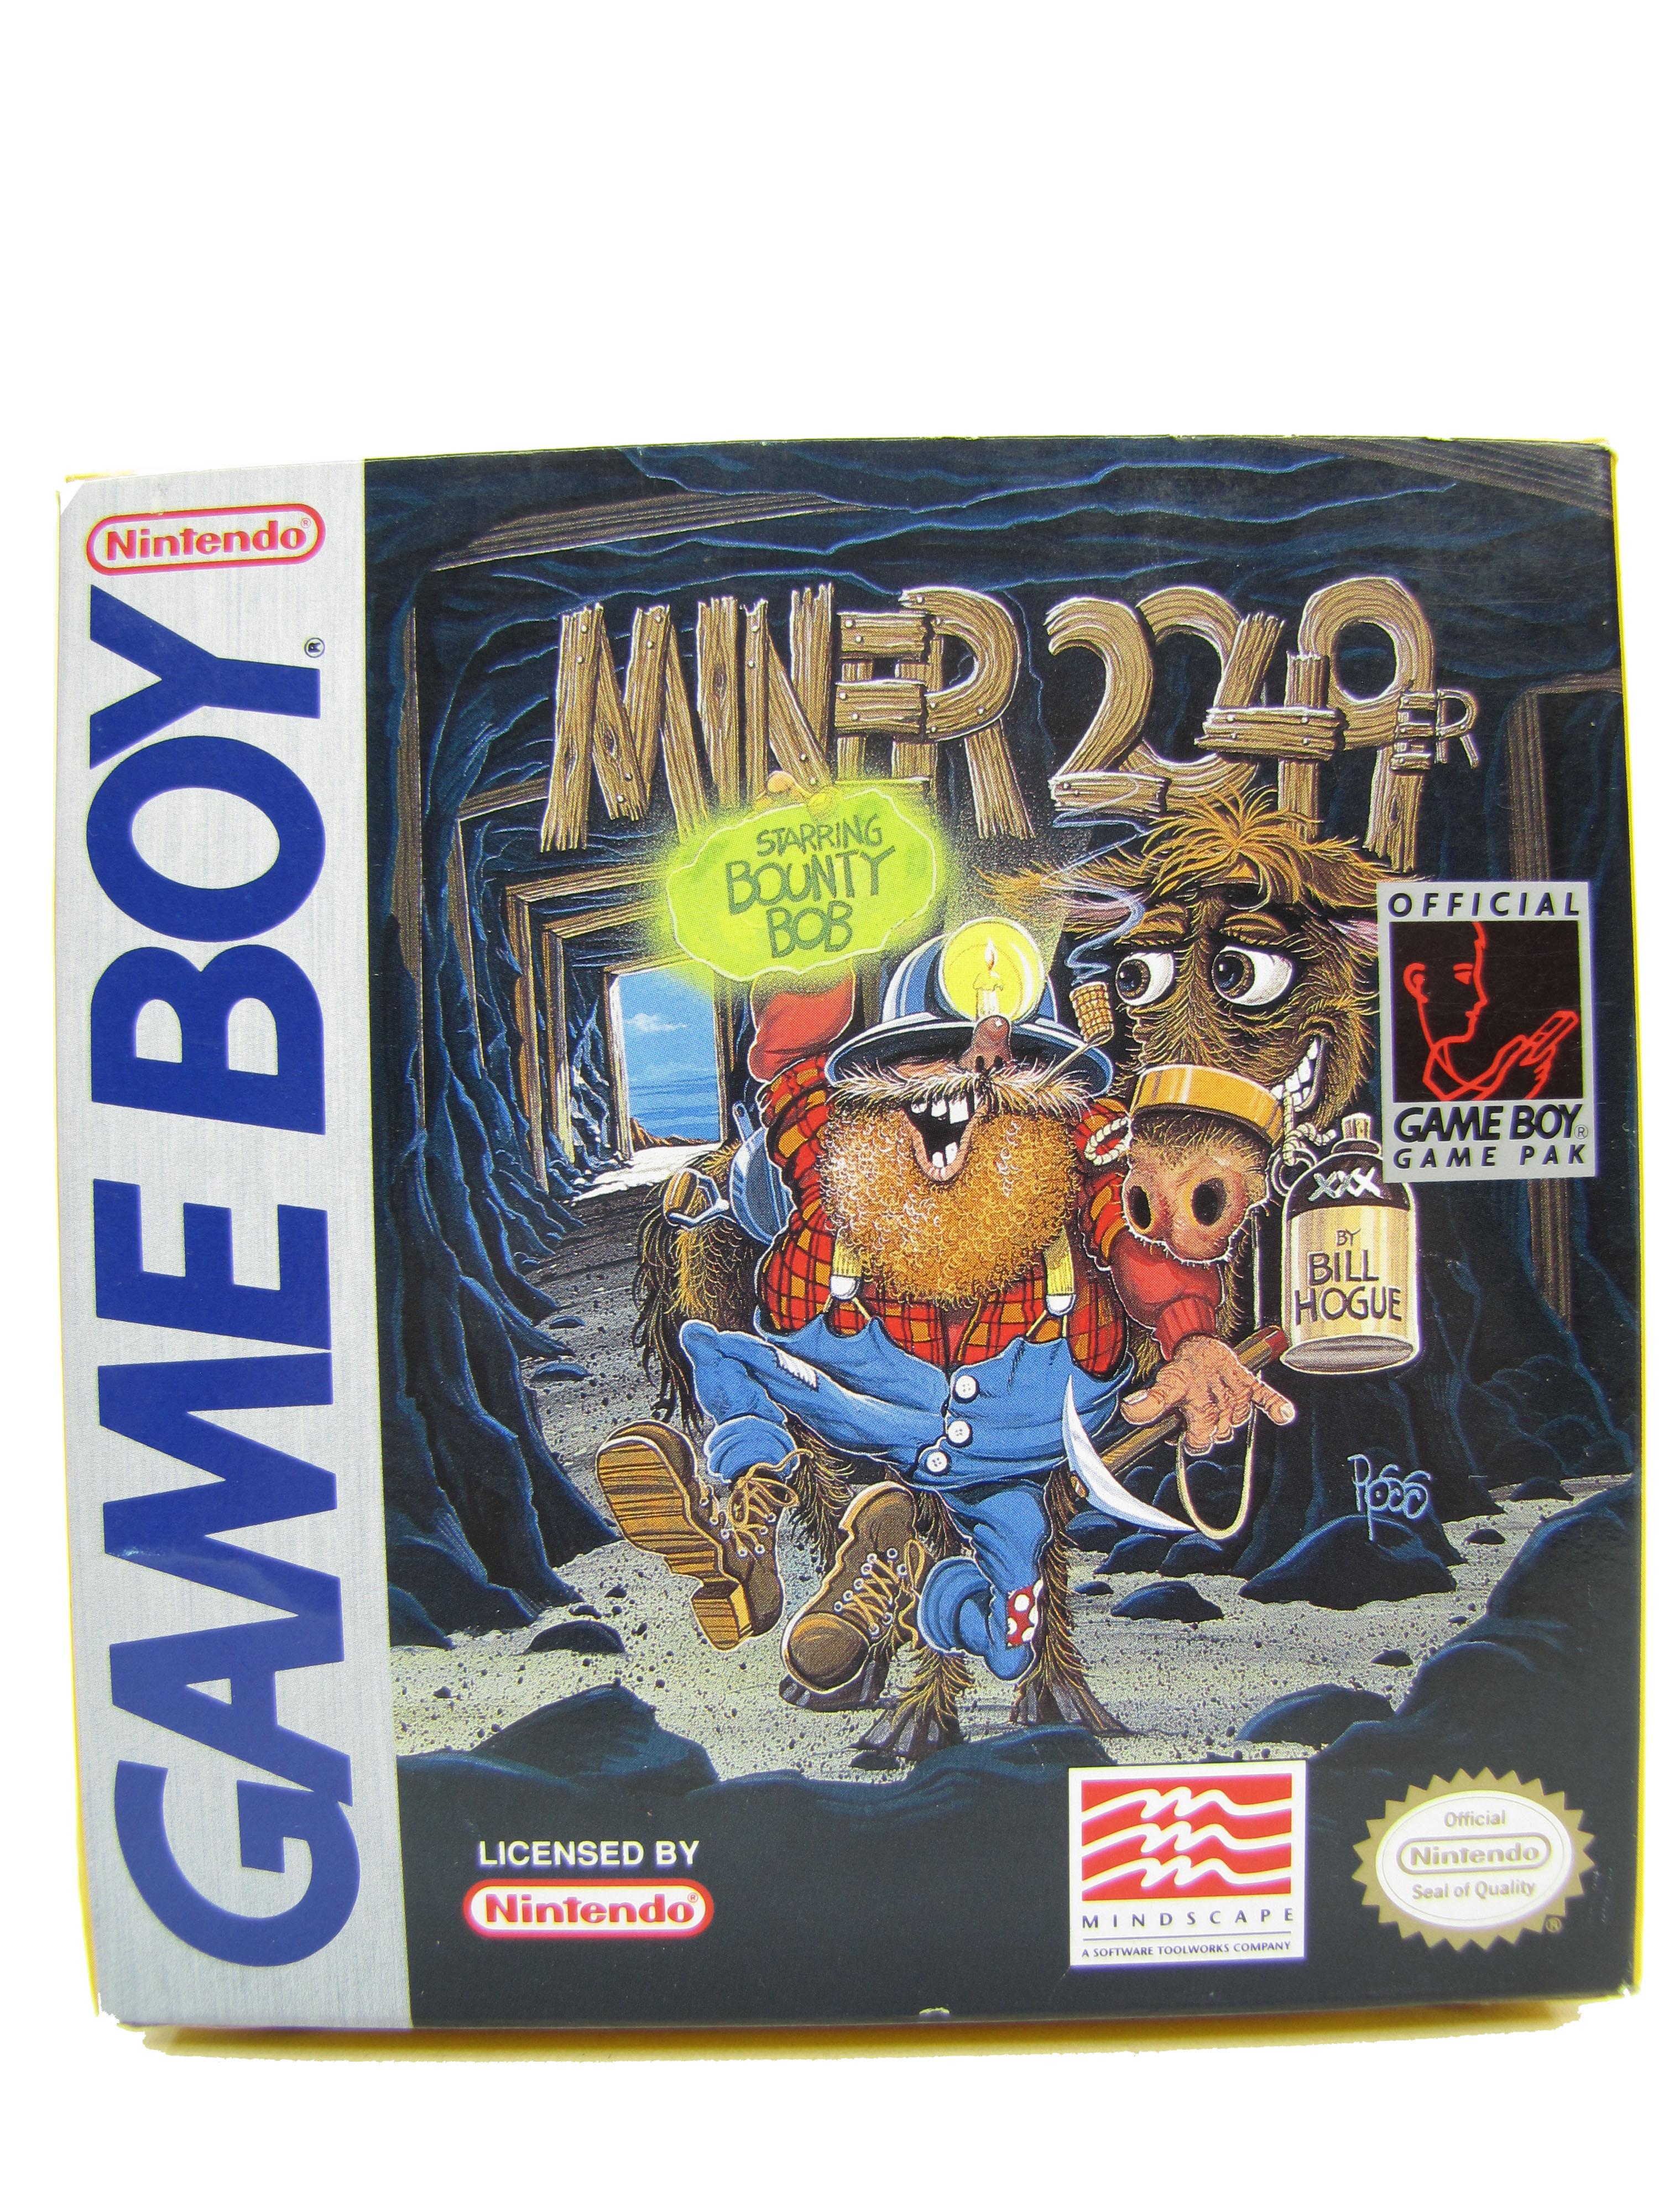 Game Boy Miner 2049er Complete in Box - 1992